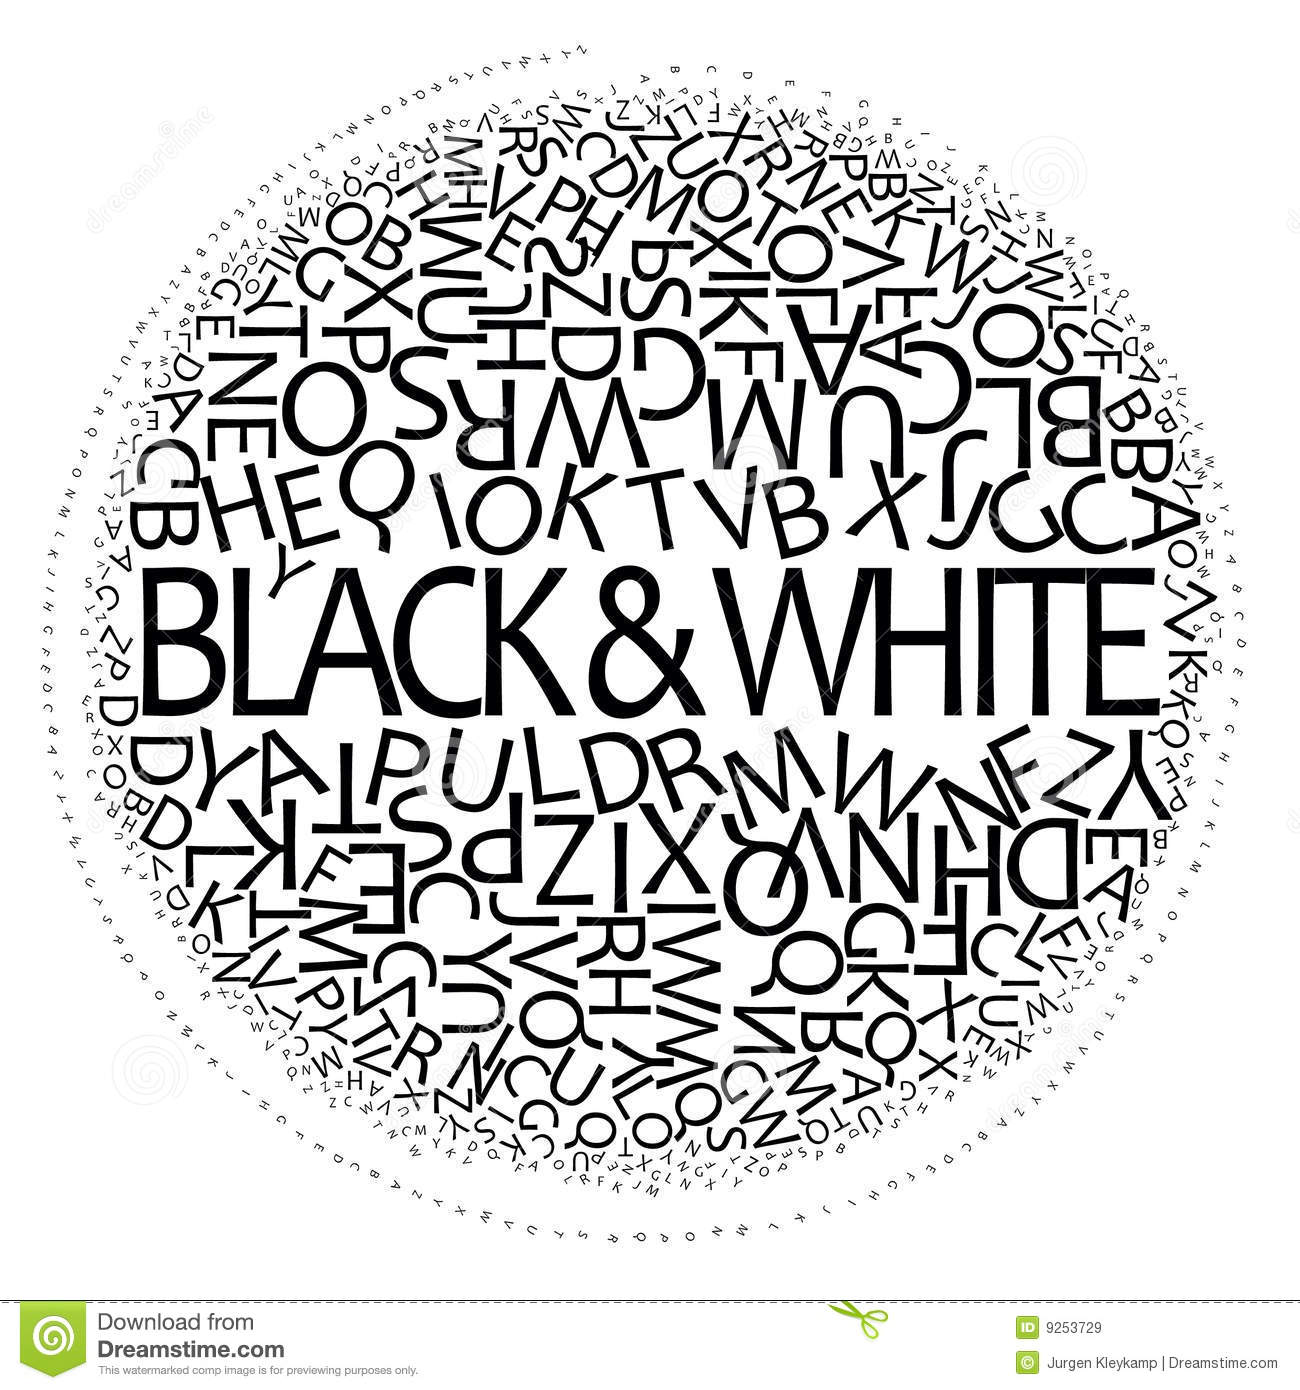 Black and white design